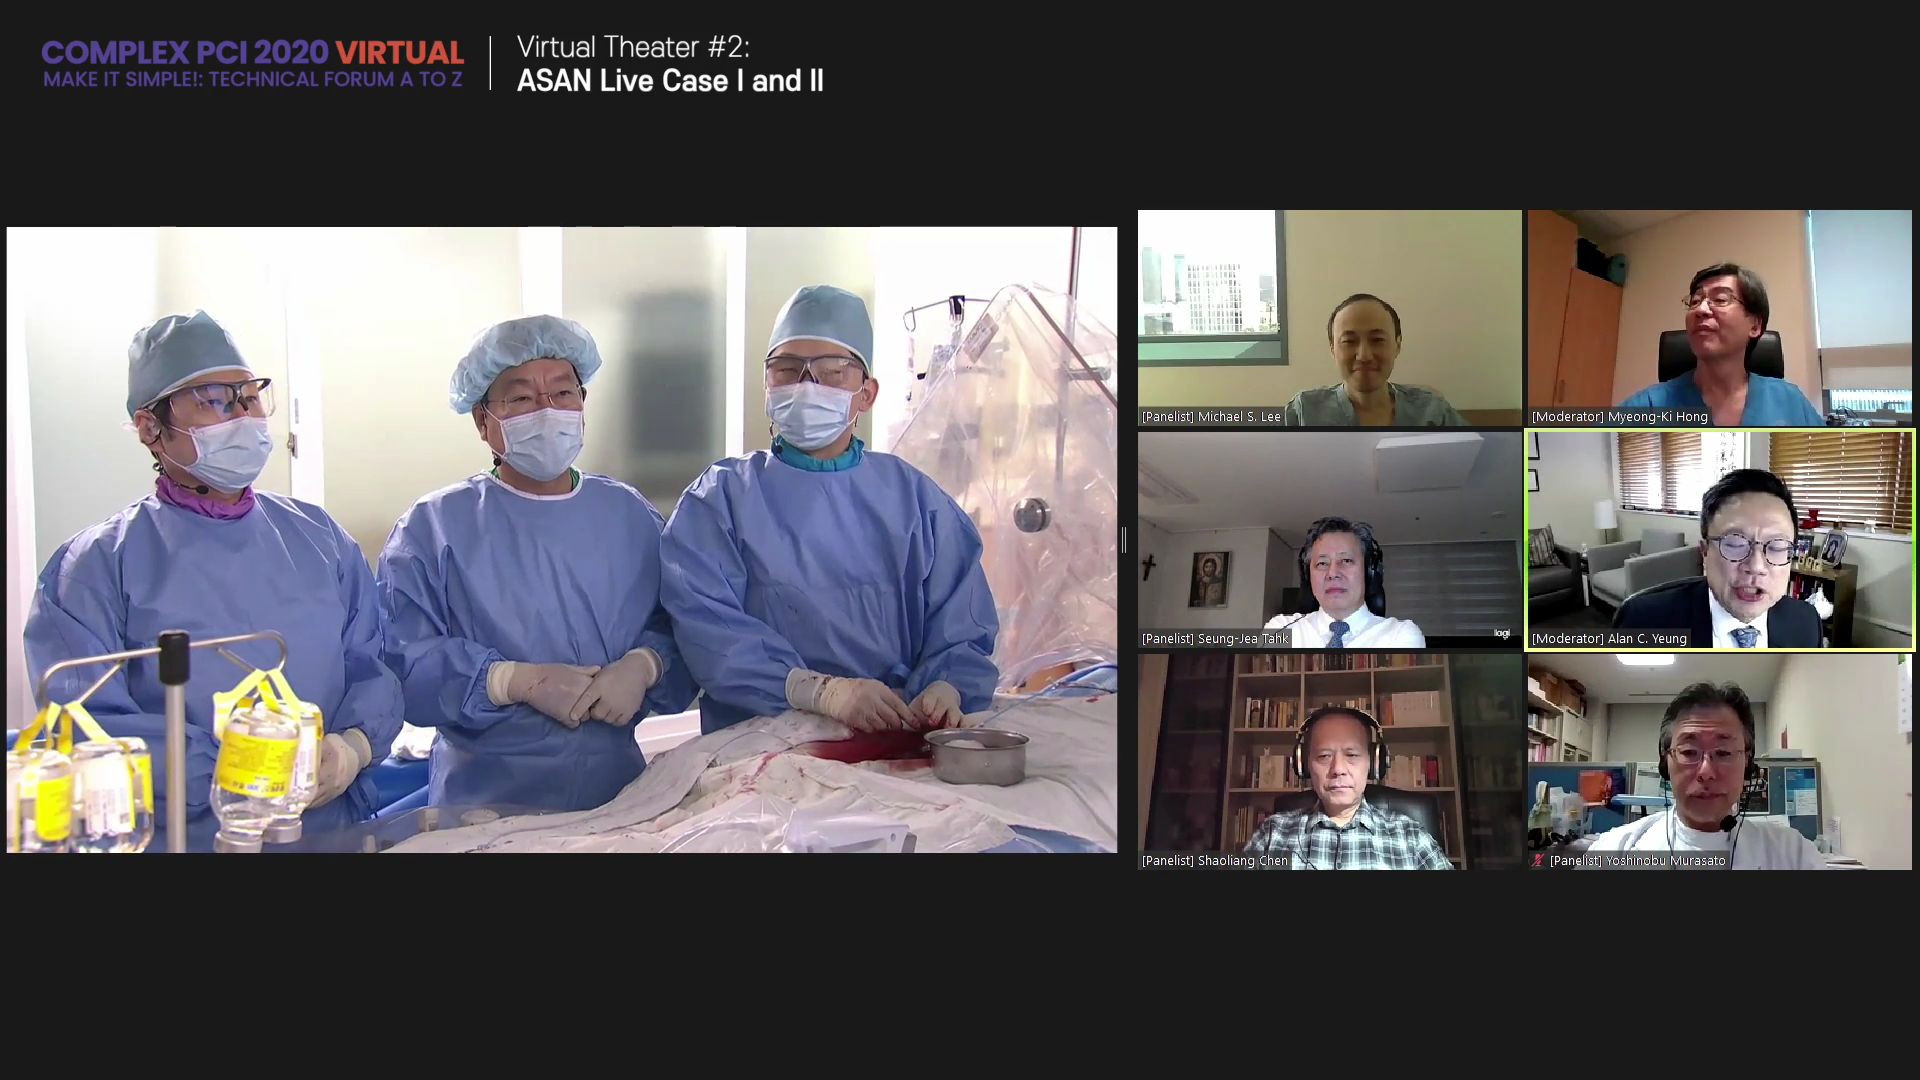 Virtual Theater #2: ASAN Live Case I and II